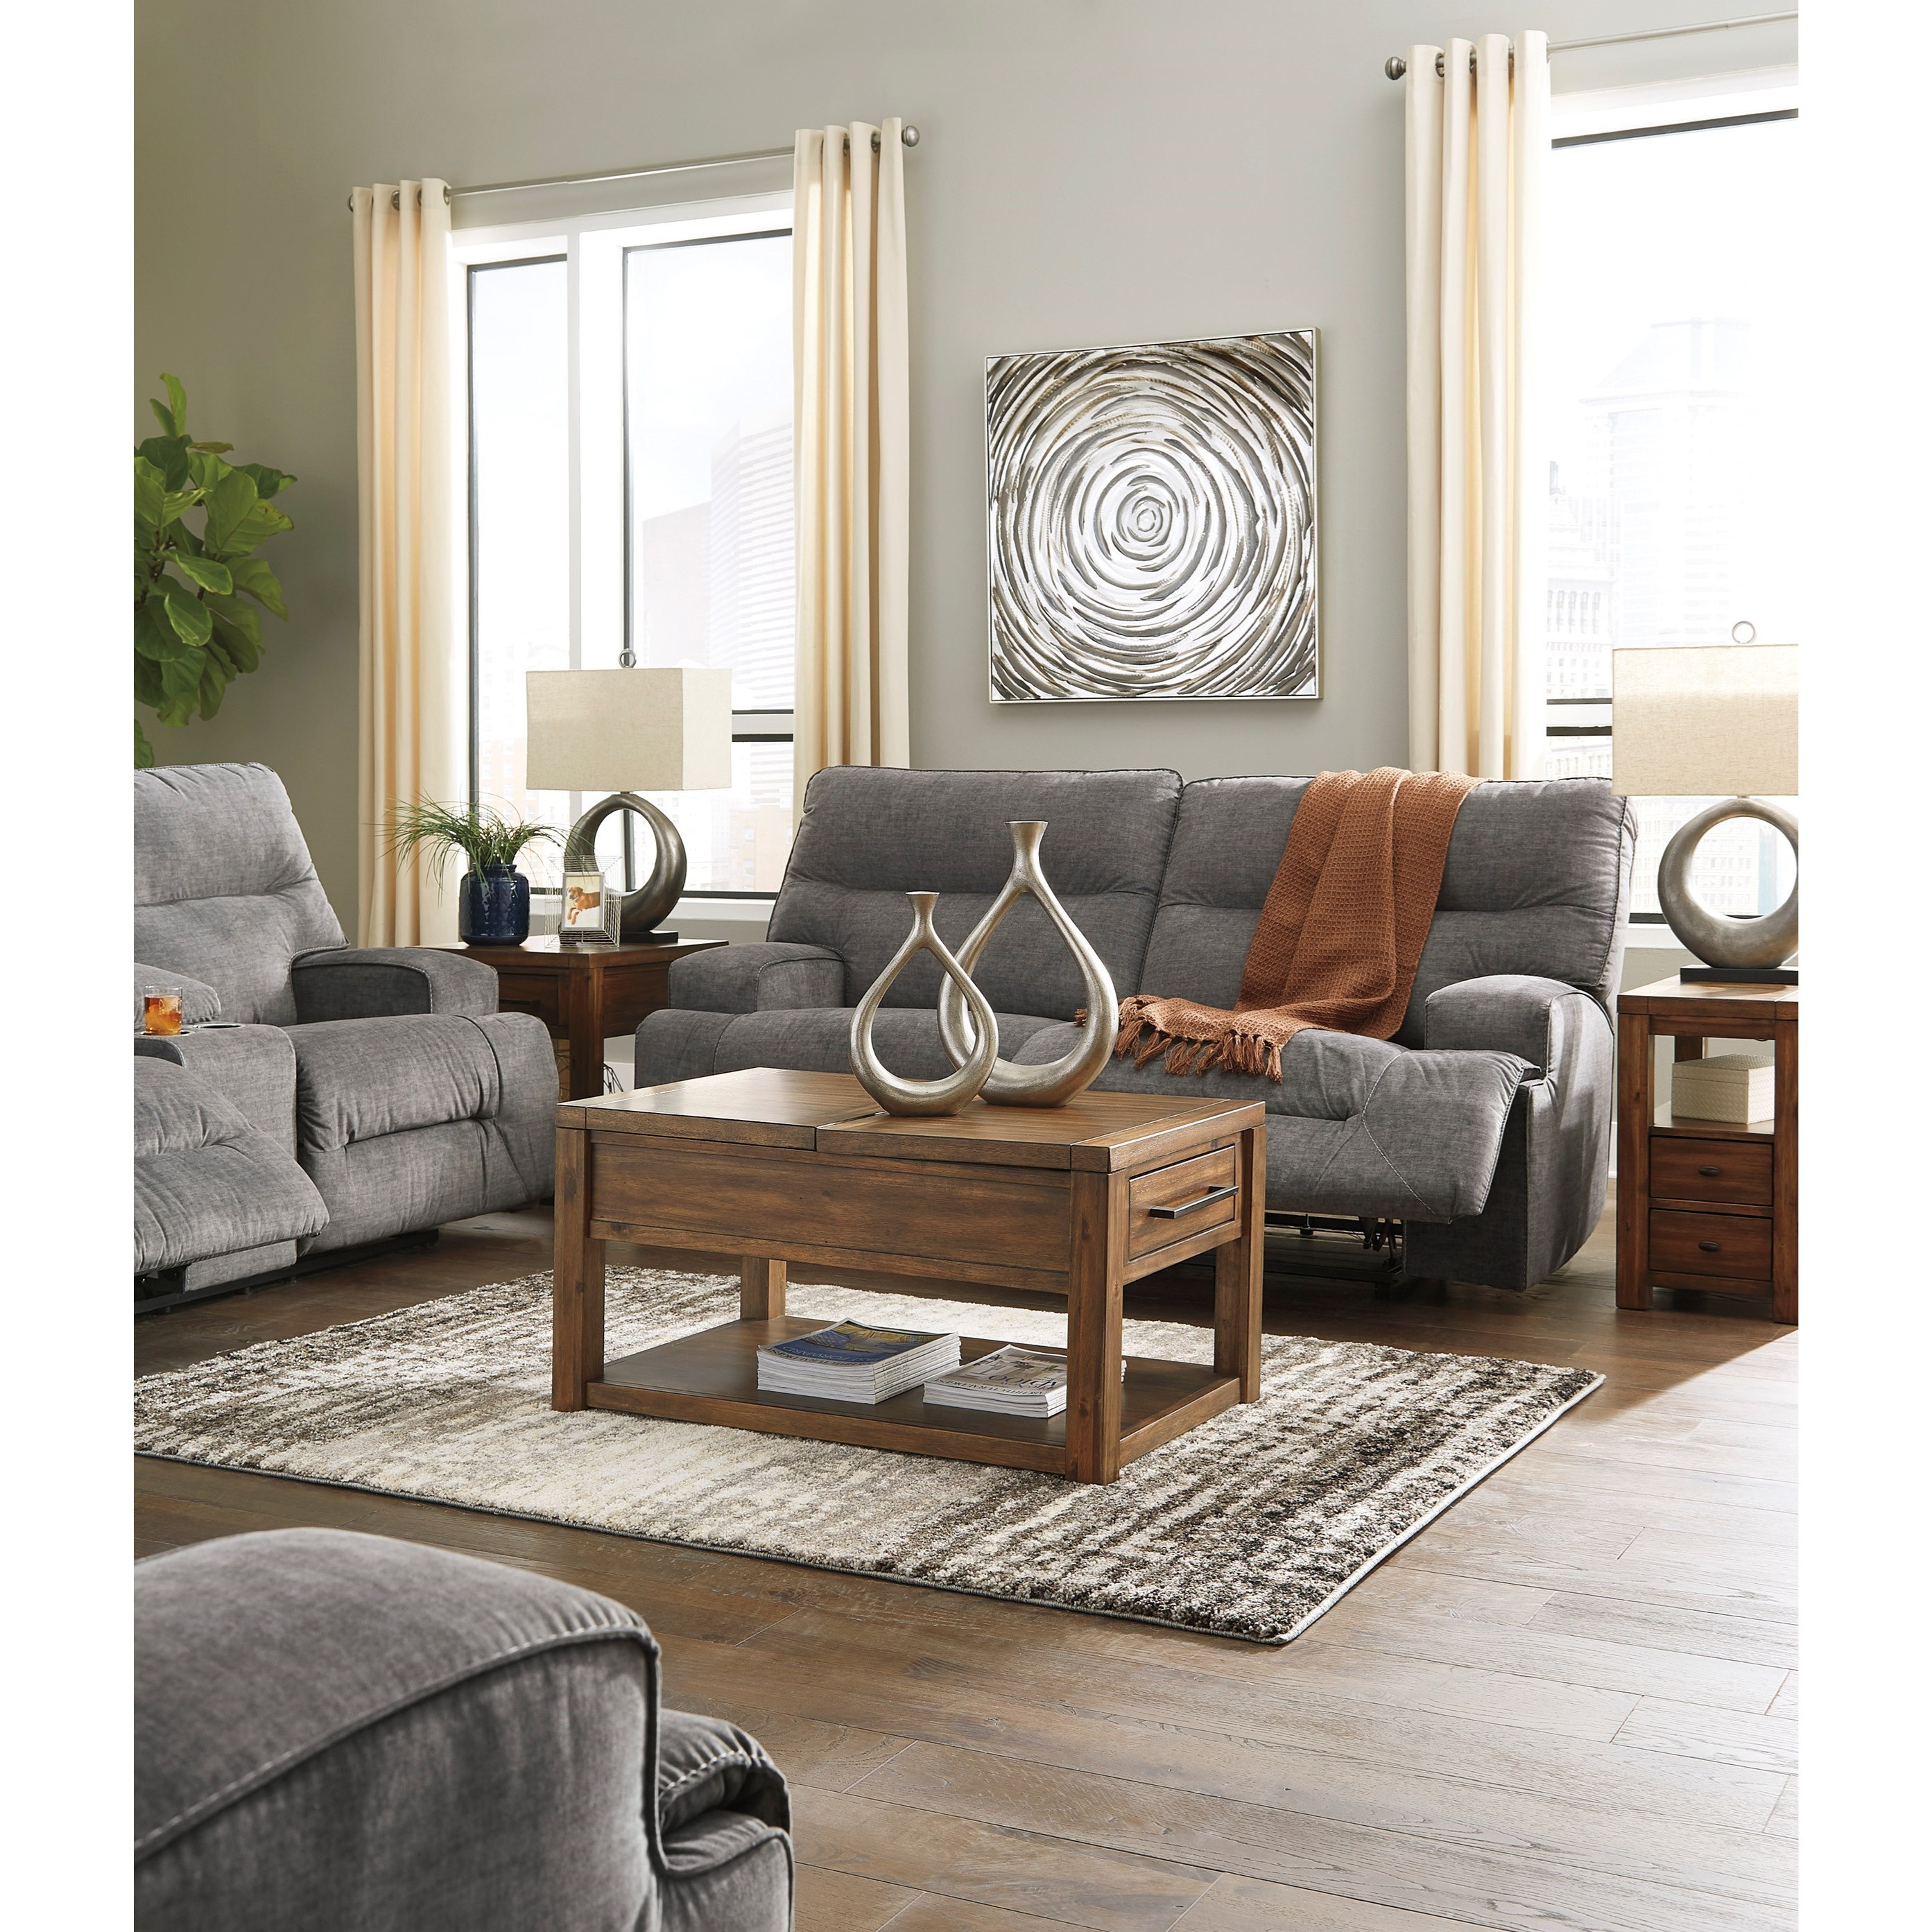 Coombs Reclining Living Room Group by Benchcraft at Miller Waldrop Furniture and Decor